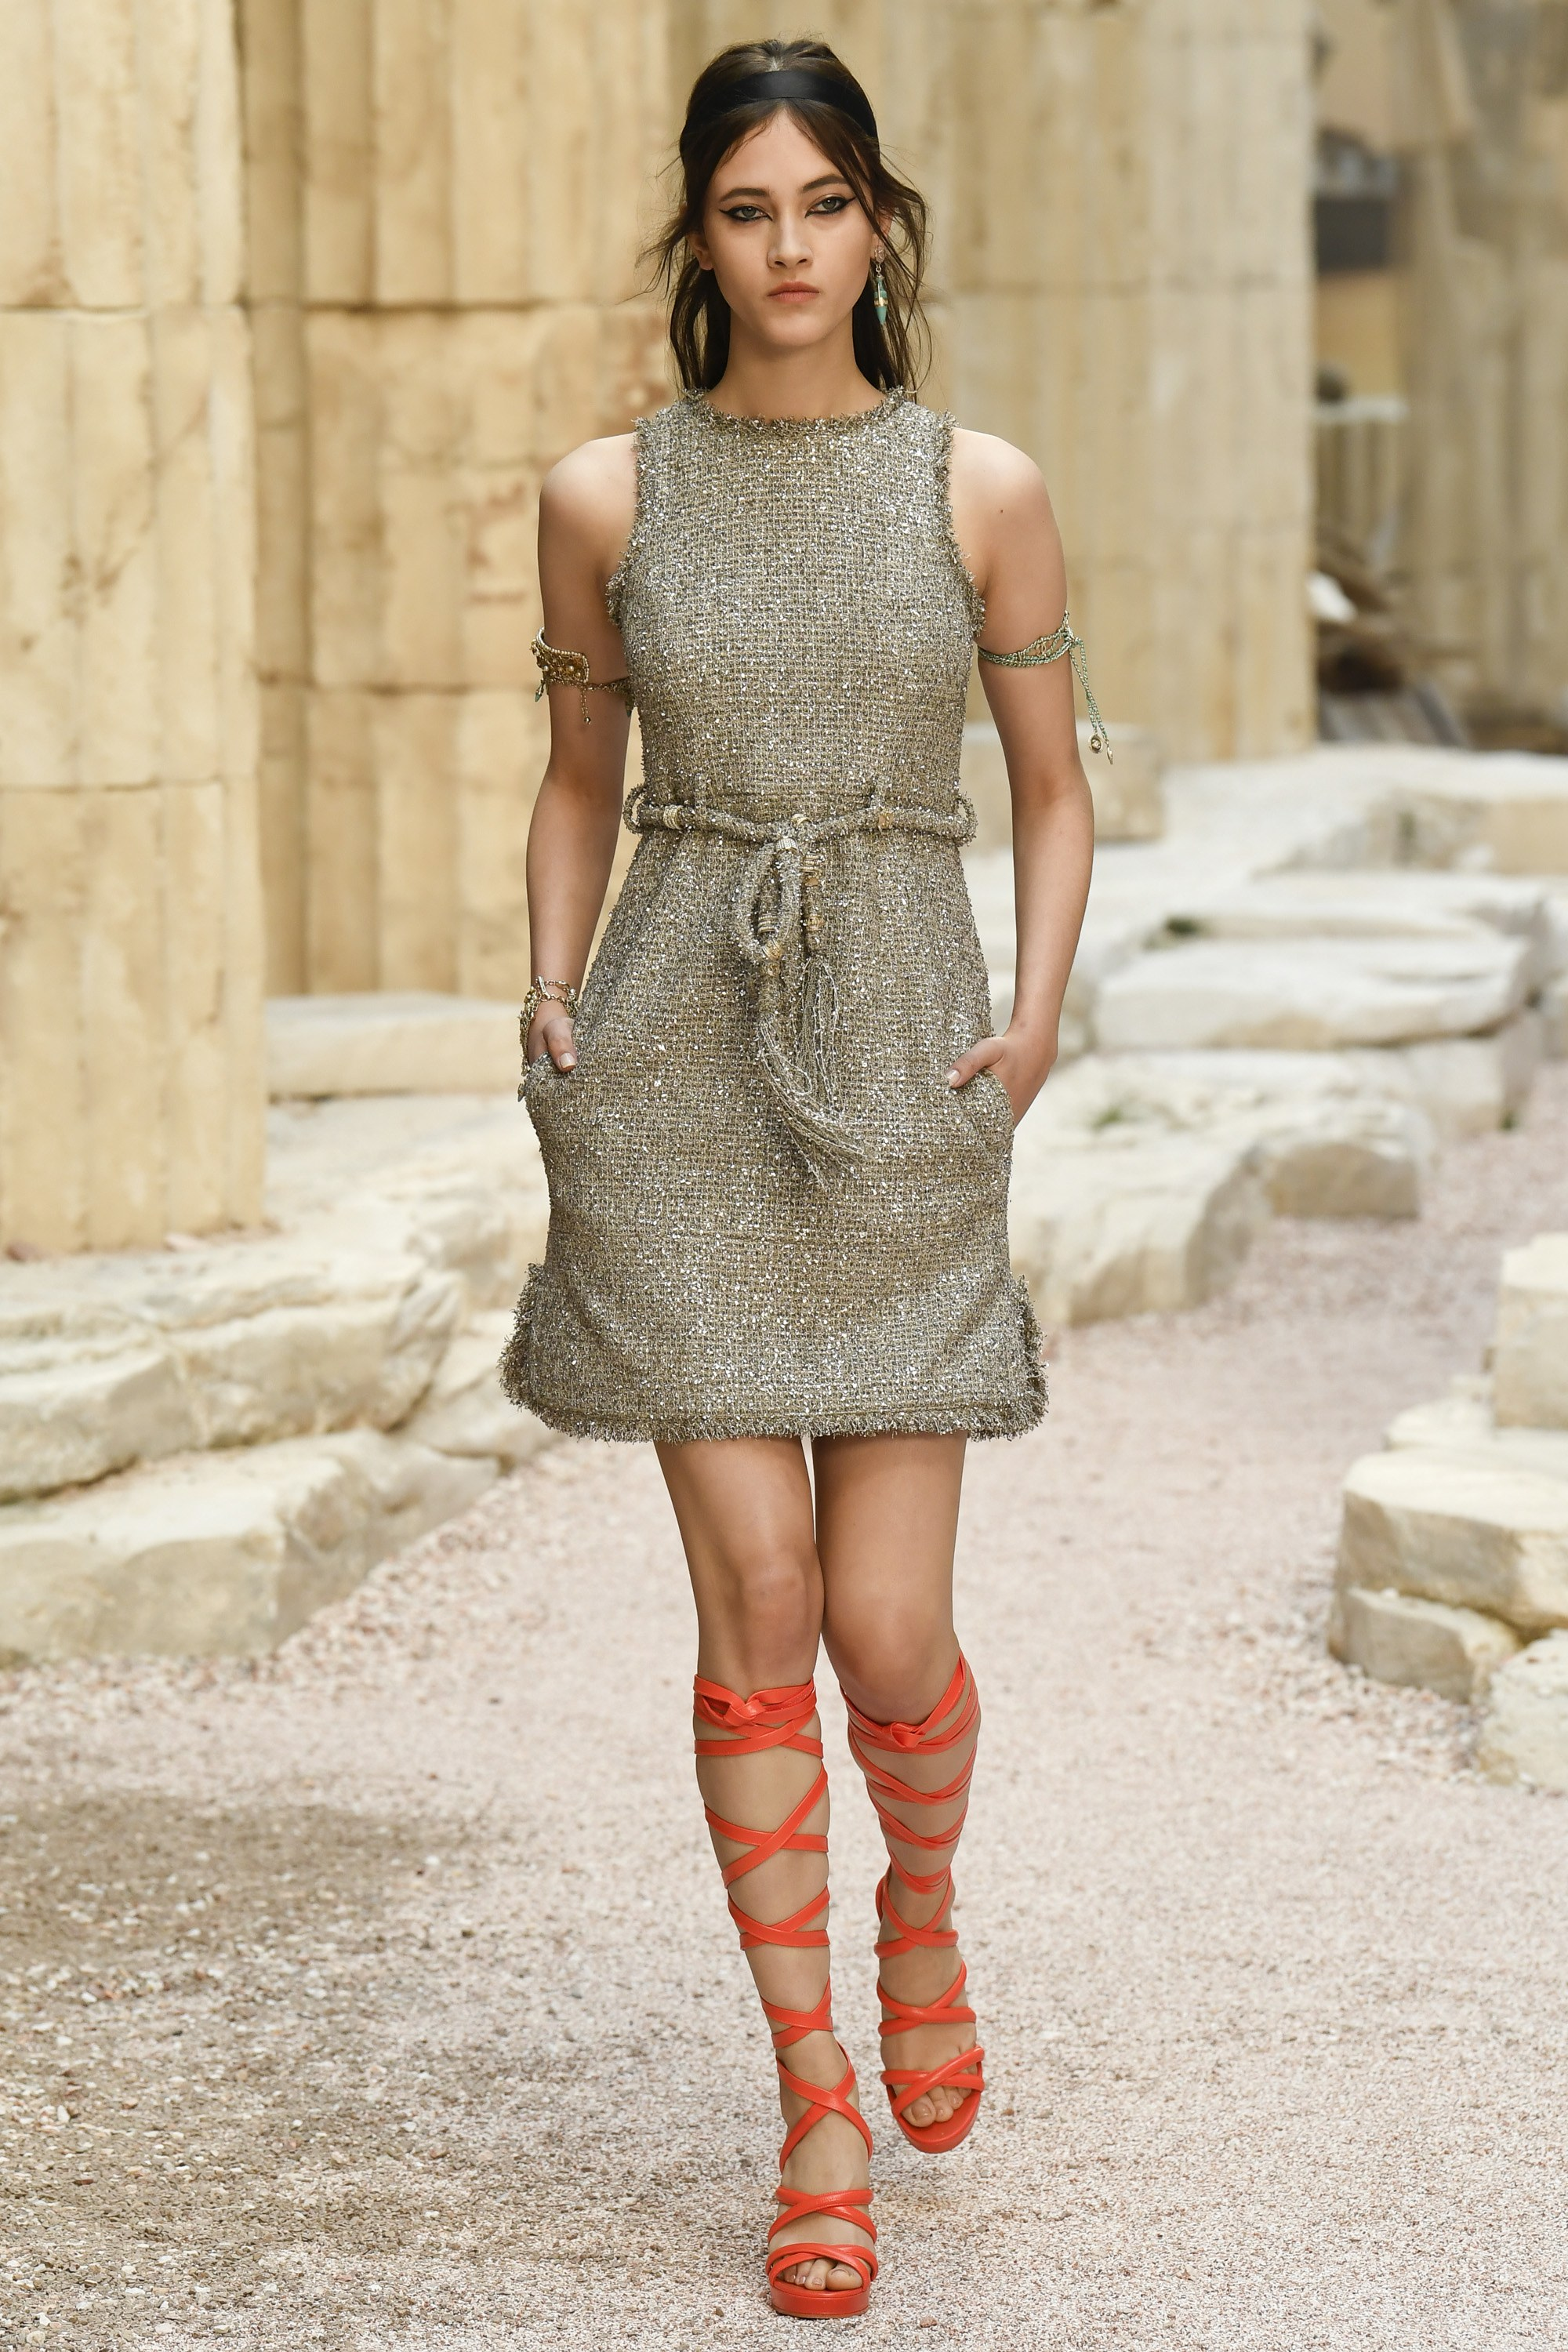 Chanel Cruise 2018. The Modernity of Antiquity ...